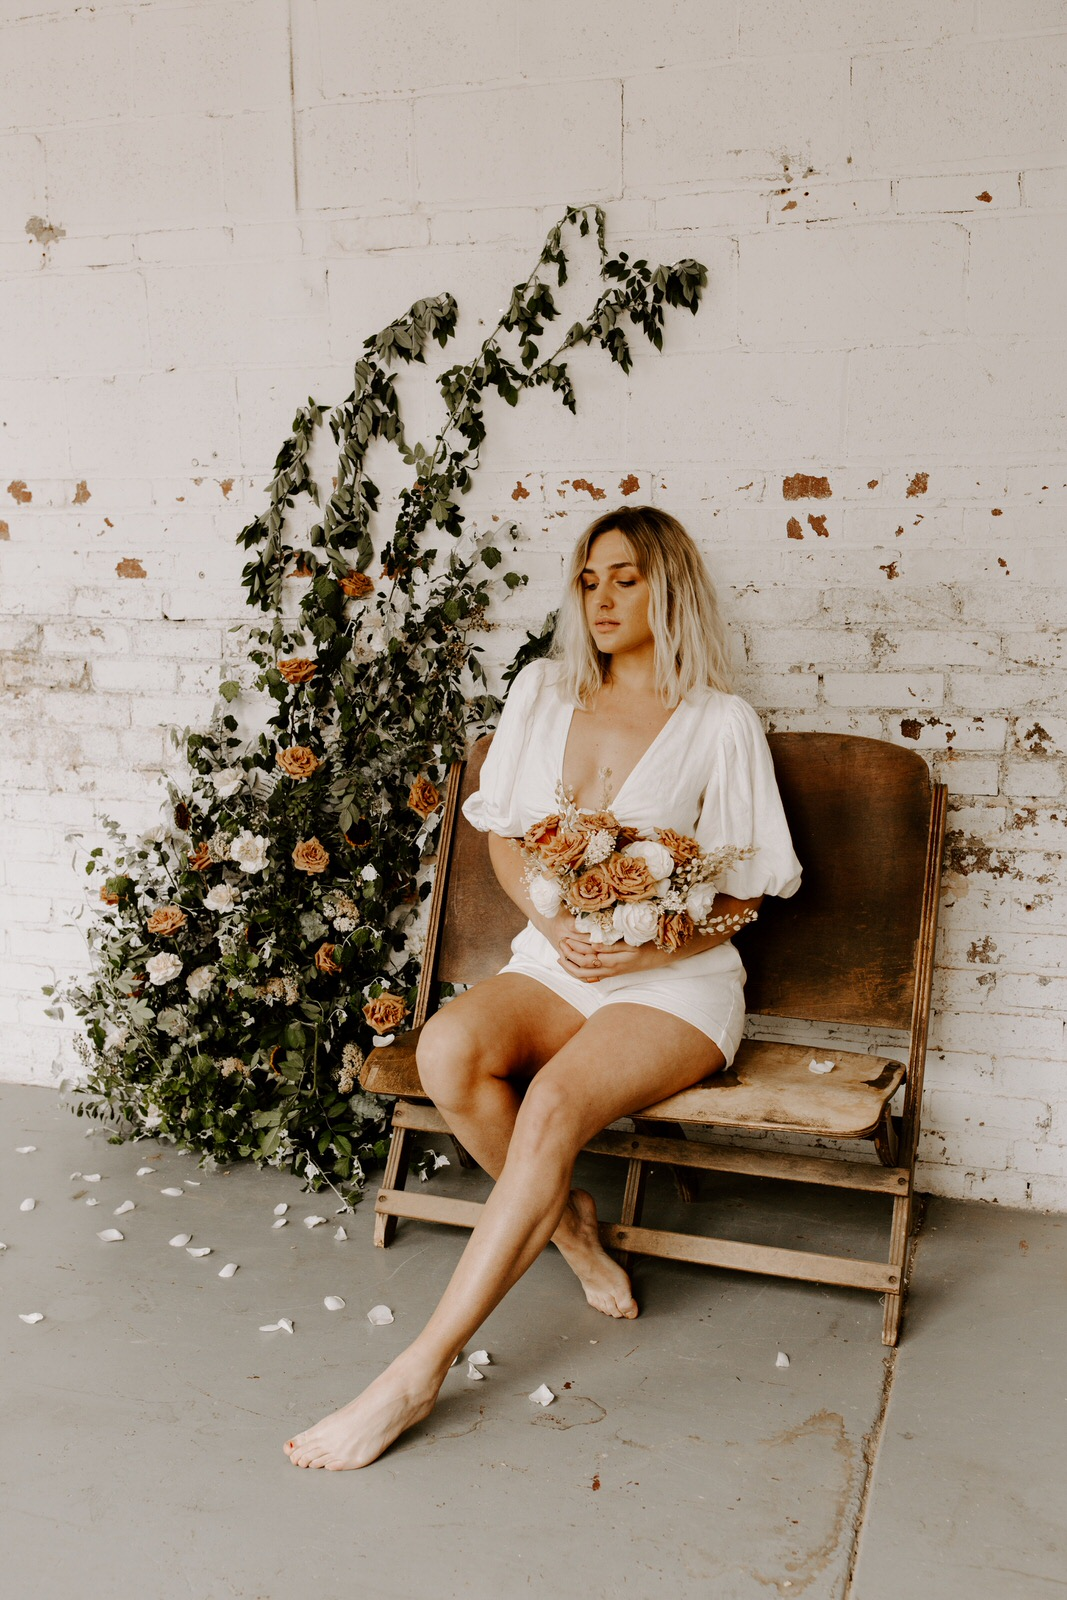 bohemian model sitting in rustic warehouse setting with custom bouquet for photography collaboration.jpg